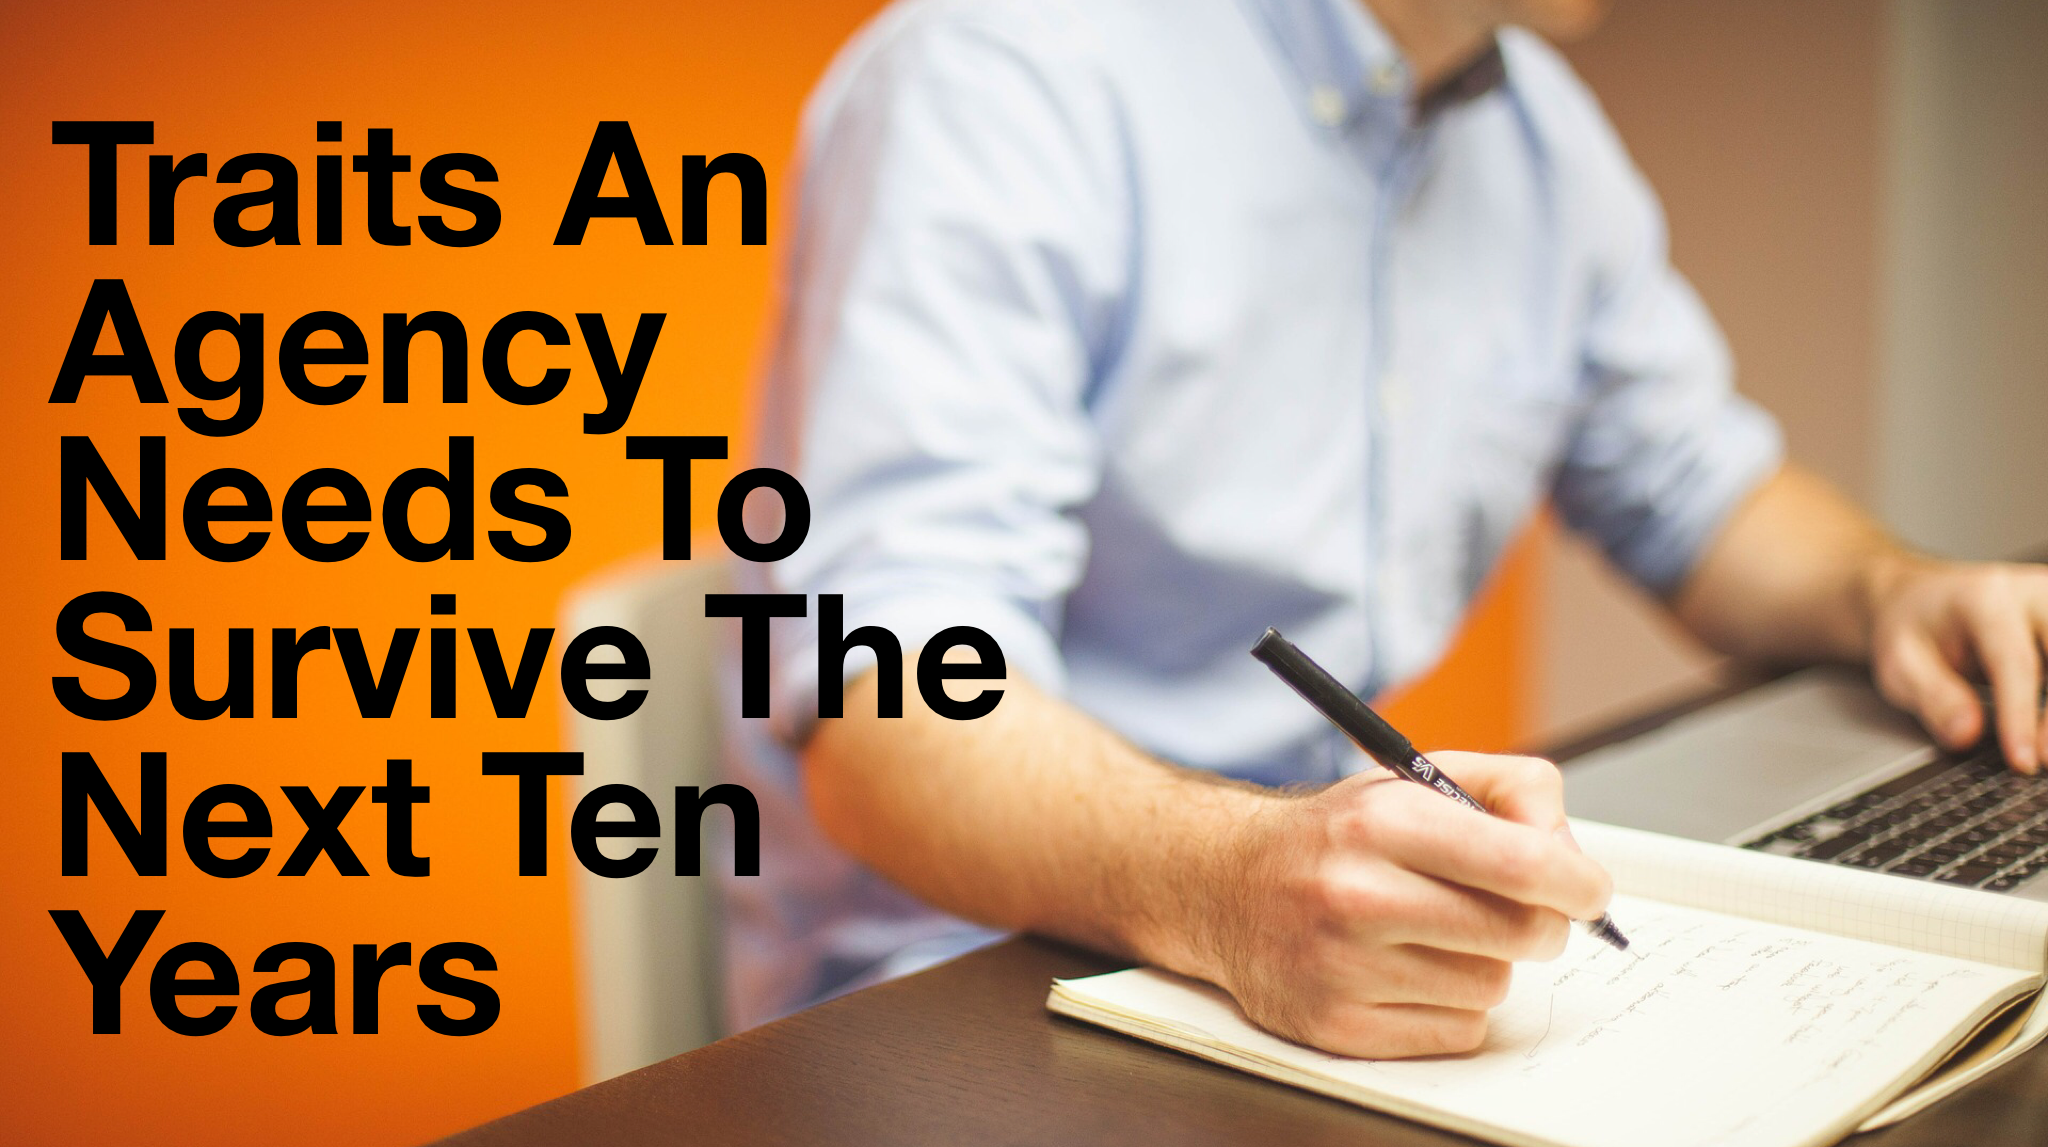 Traits an Agency Needs to Survive the Next Ten Years.